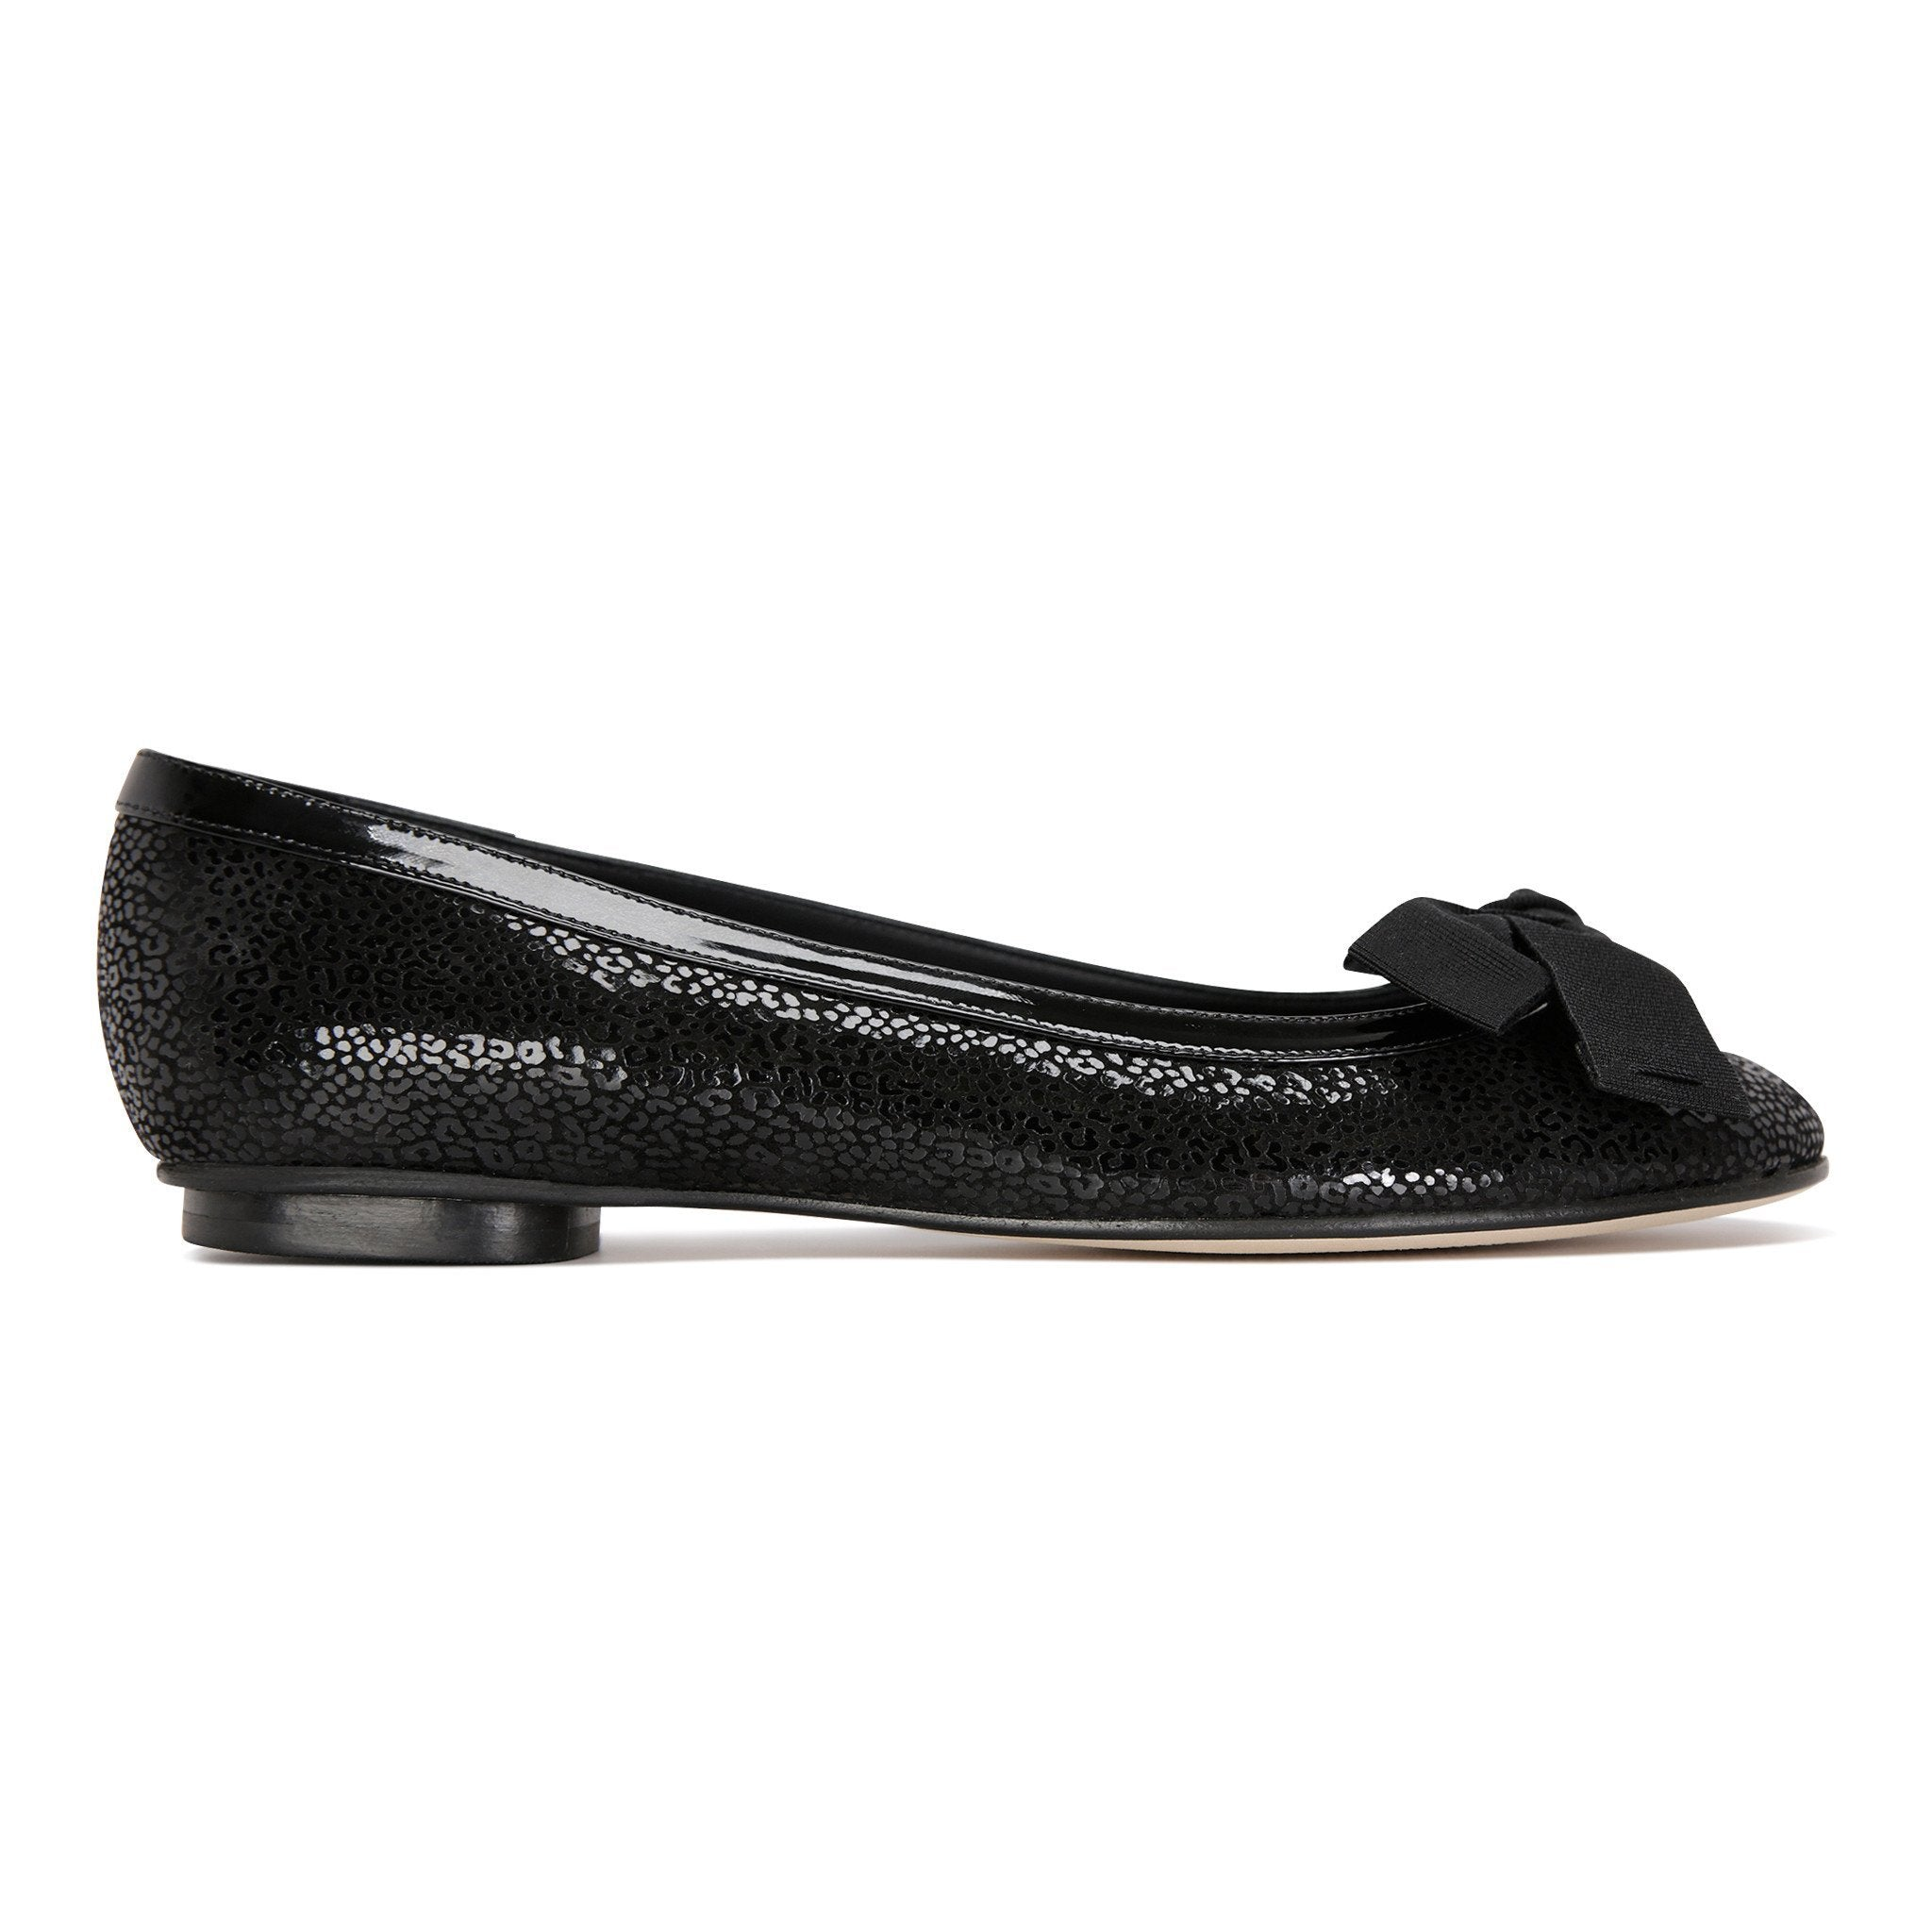 ROMA - Savannah Nero + Patent Trim + Bow, VIAJIYU - Women's Hand Made Sustainable Luxury Shoes. Made in Italy. Made to Order.